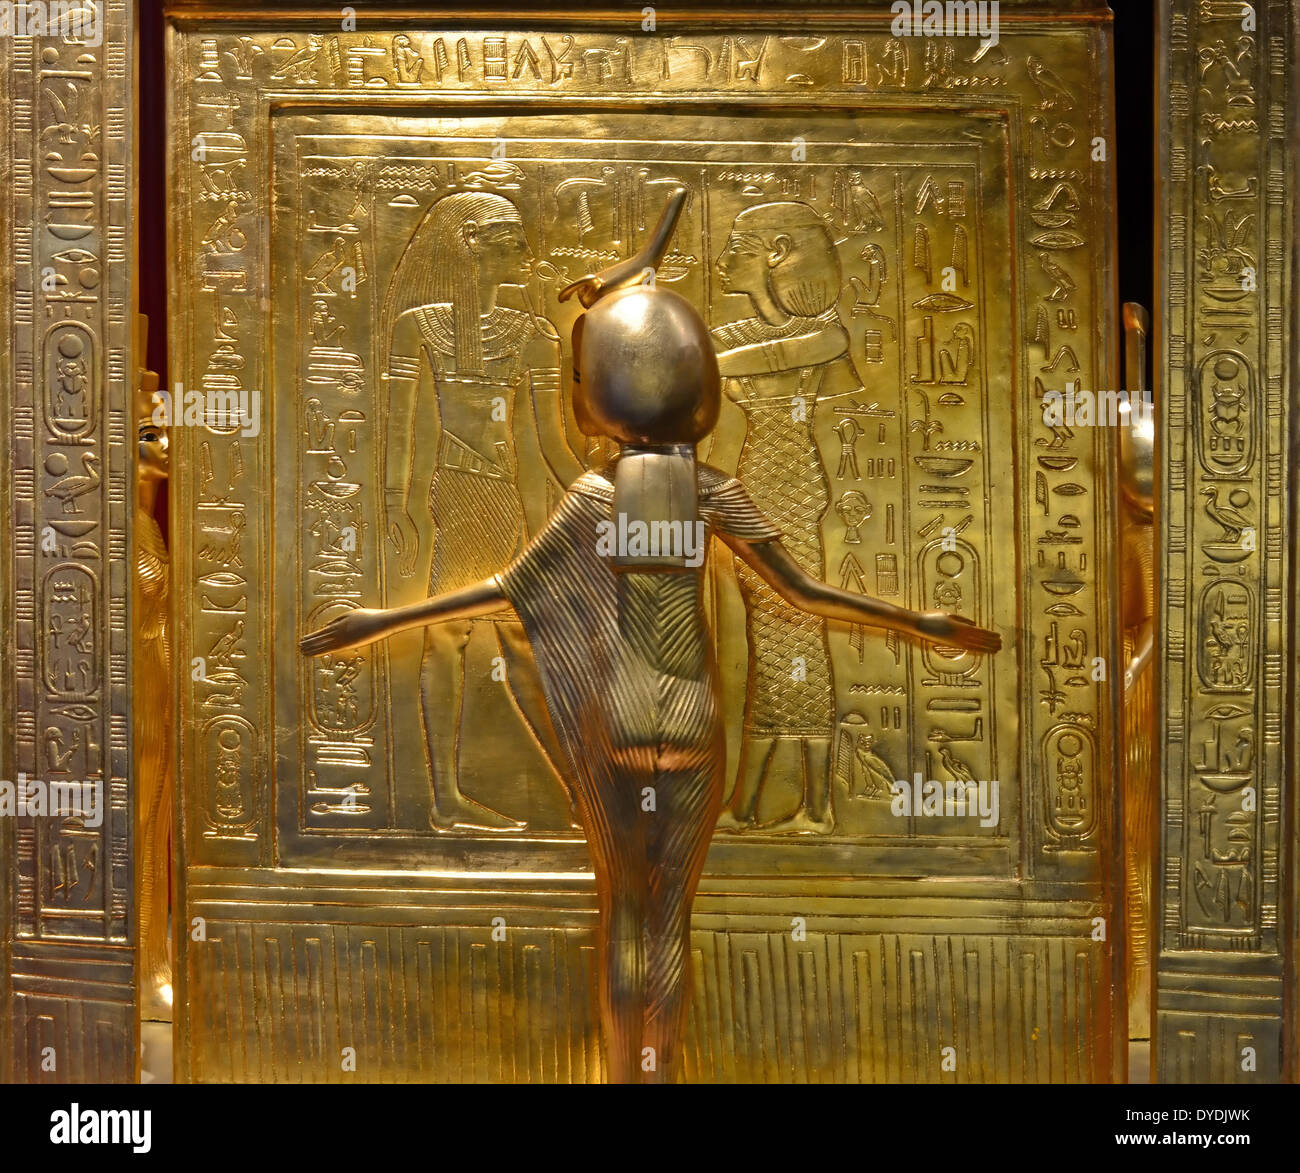 kingtut essay King tut, unraveling the mysteries of tutankhamun - egypt's boy pharaoh has fascinated the world since the first glimpse of his tomb in 1922 now modern forensics and.